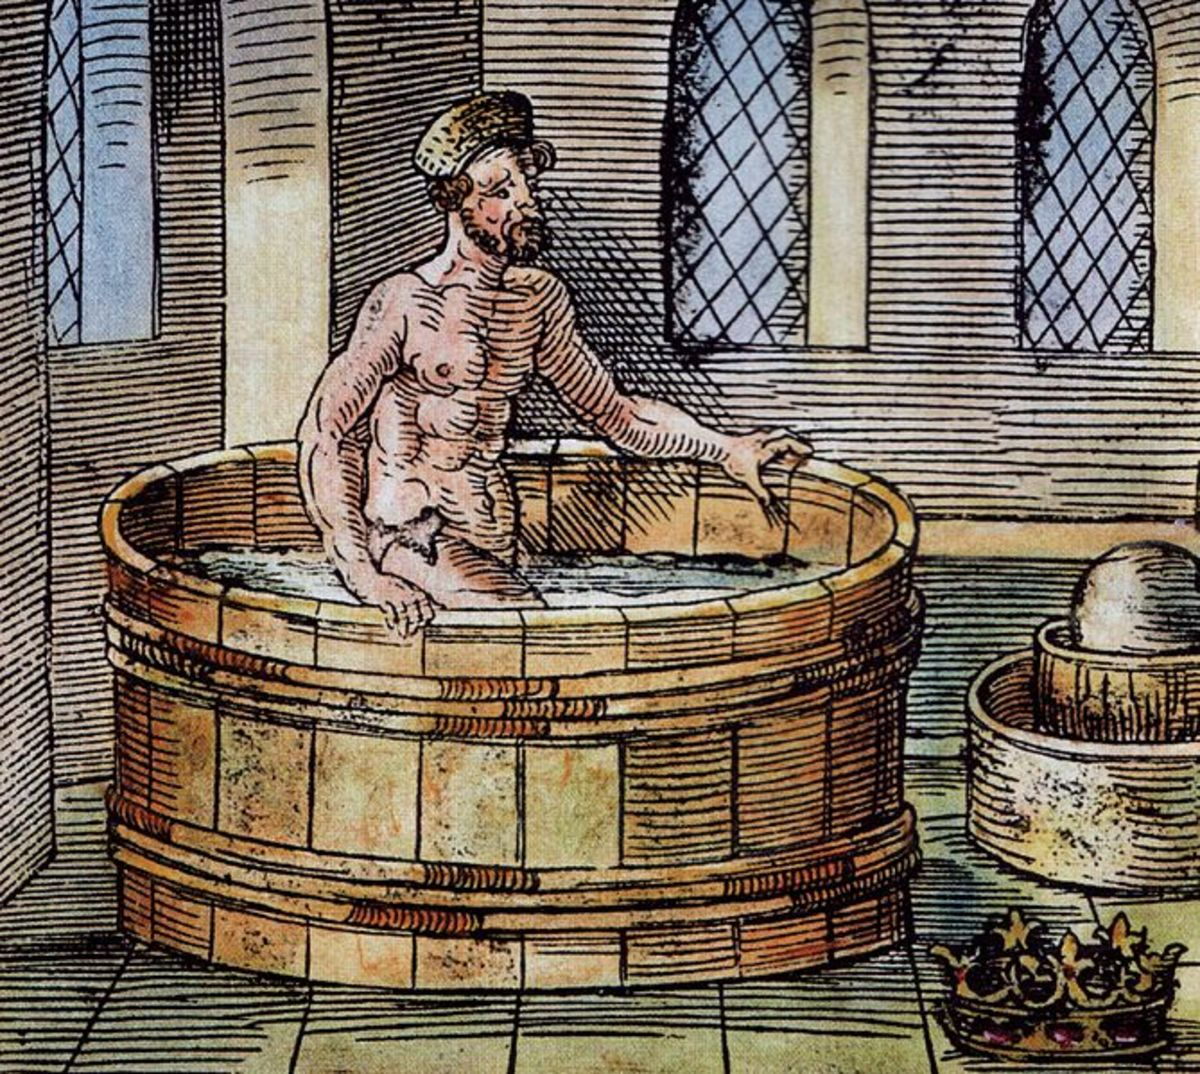 Greek philosopher Archimedes in his bath - 16th Century carving.